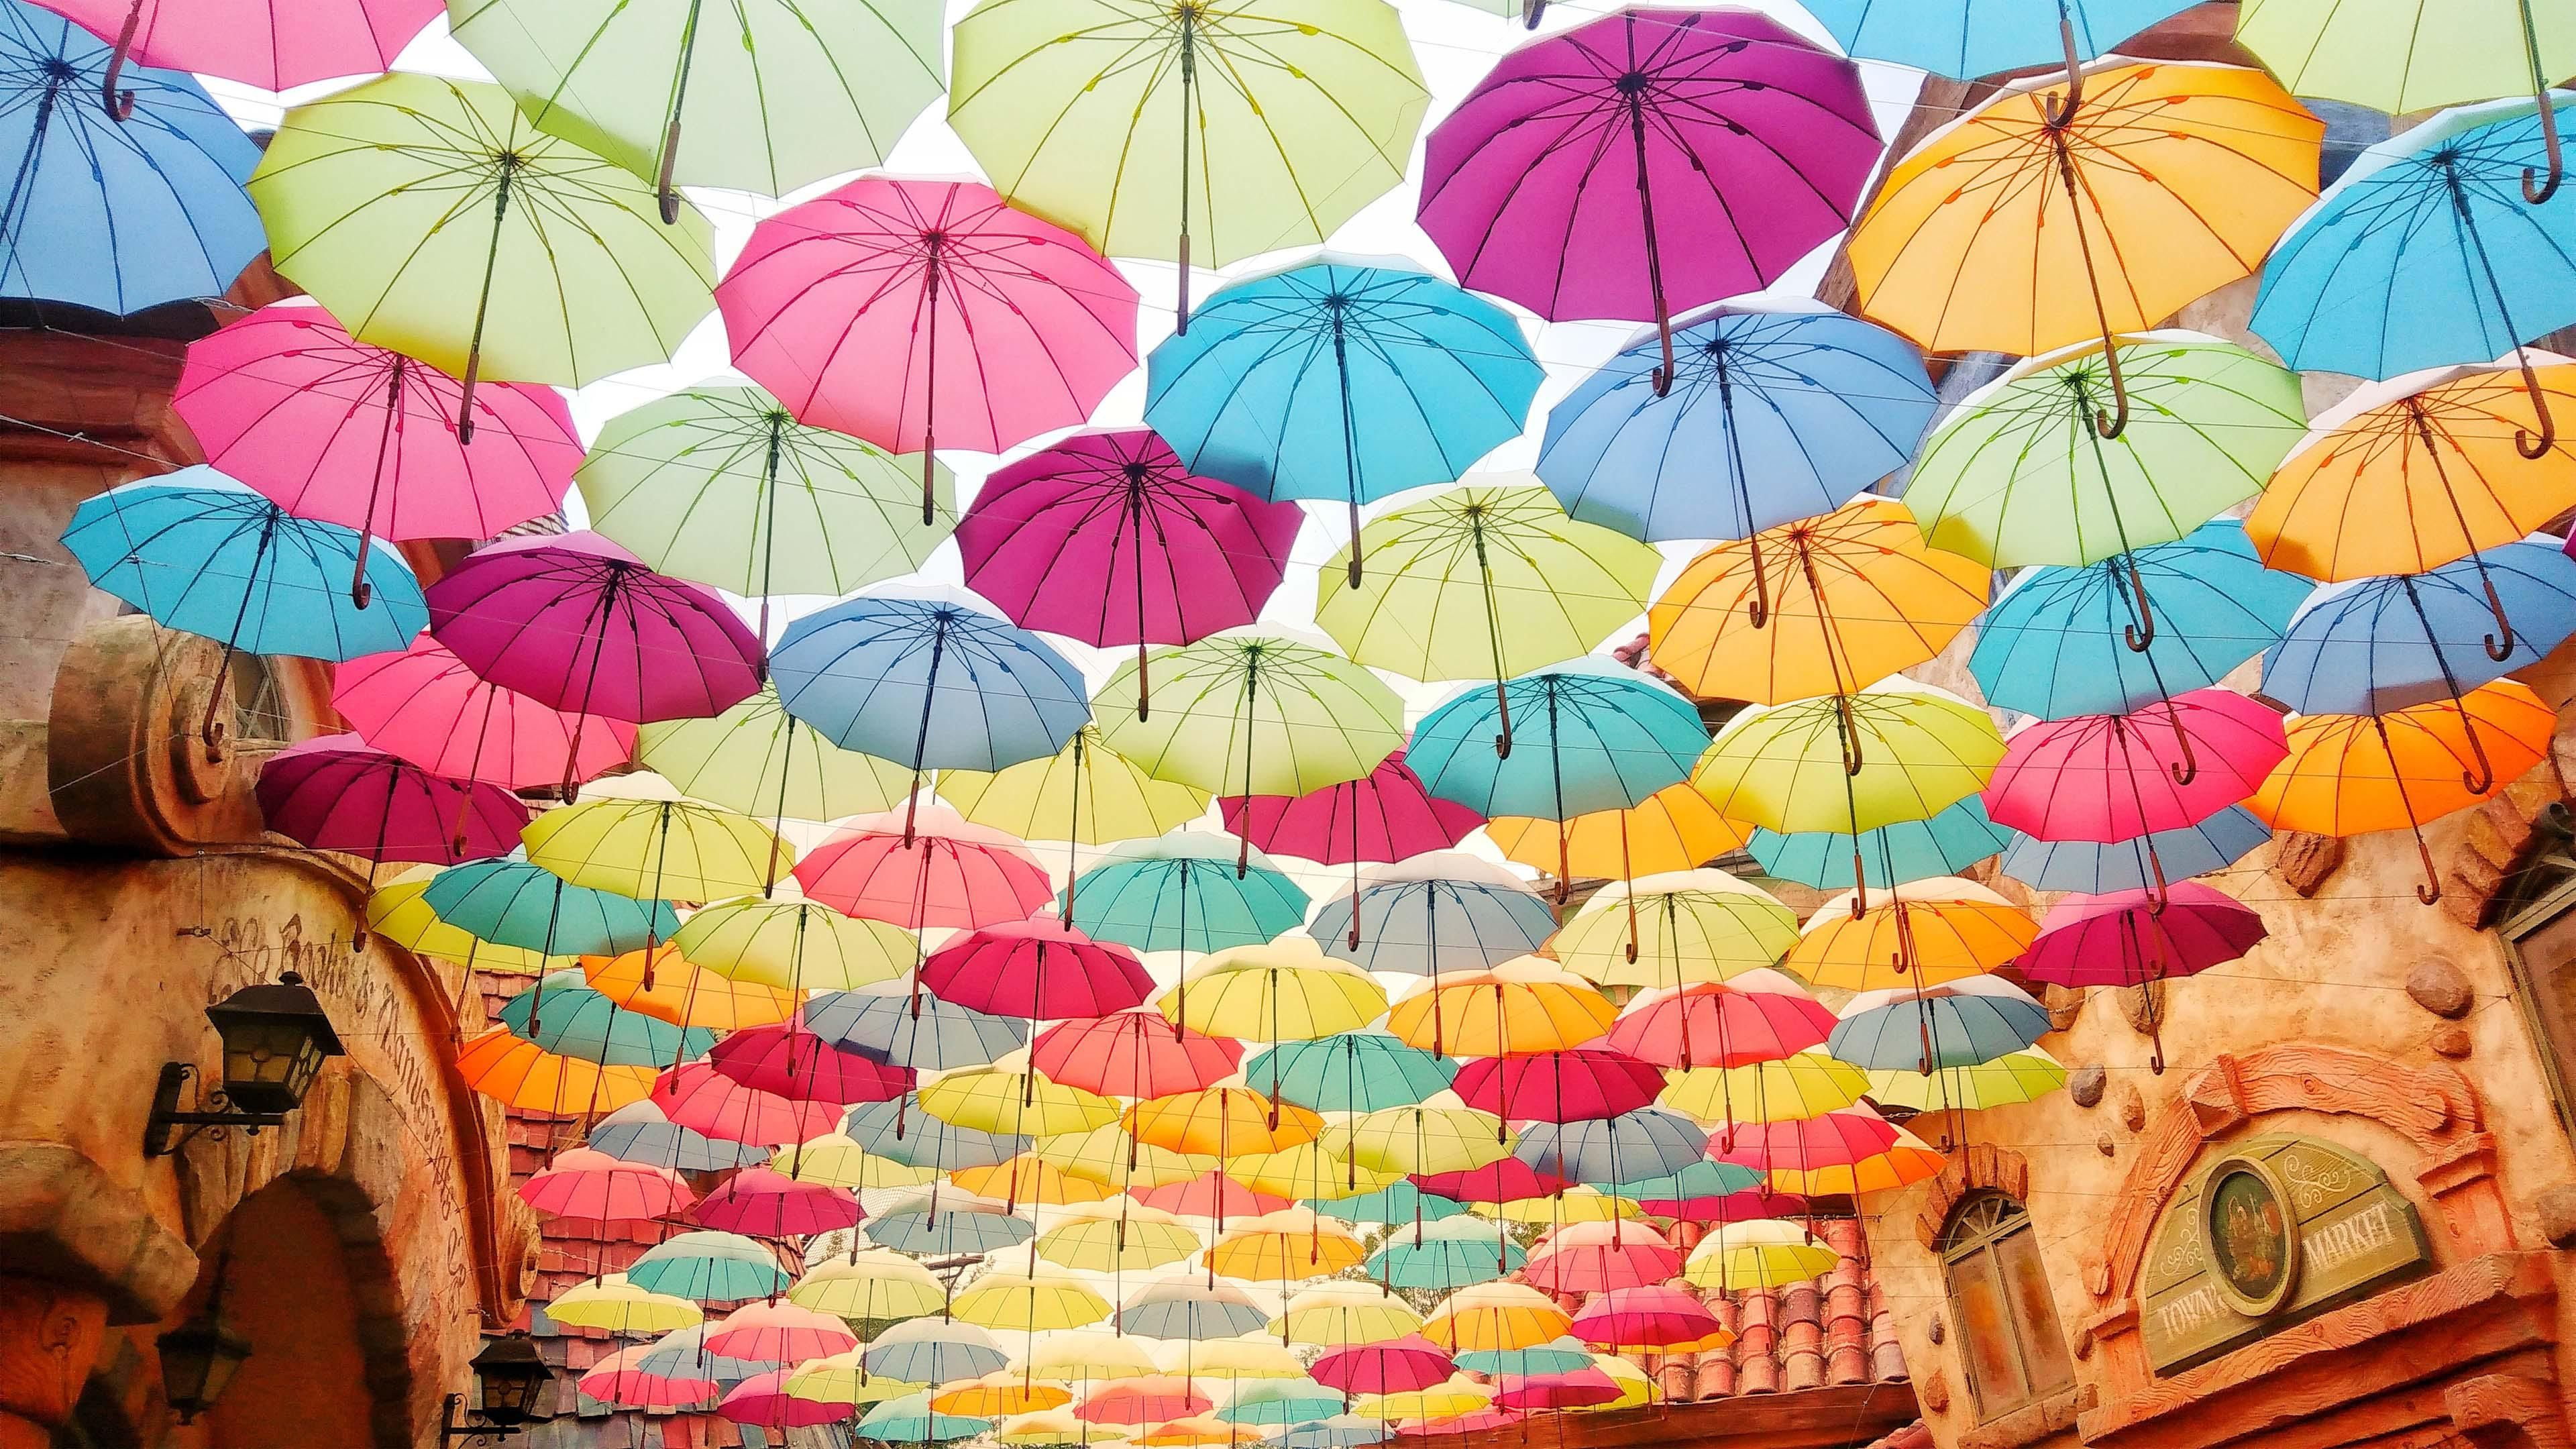 Umbrella Flowers Are In Full Bloom In The Blue Sky Anime Flower Blue Sky Wallpaper Flower Wallpaper